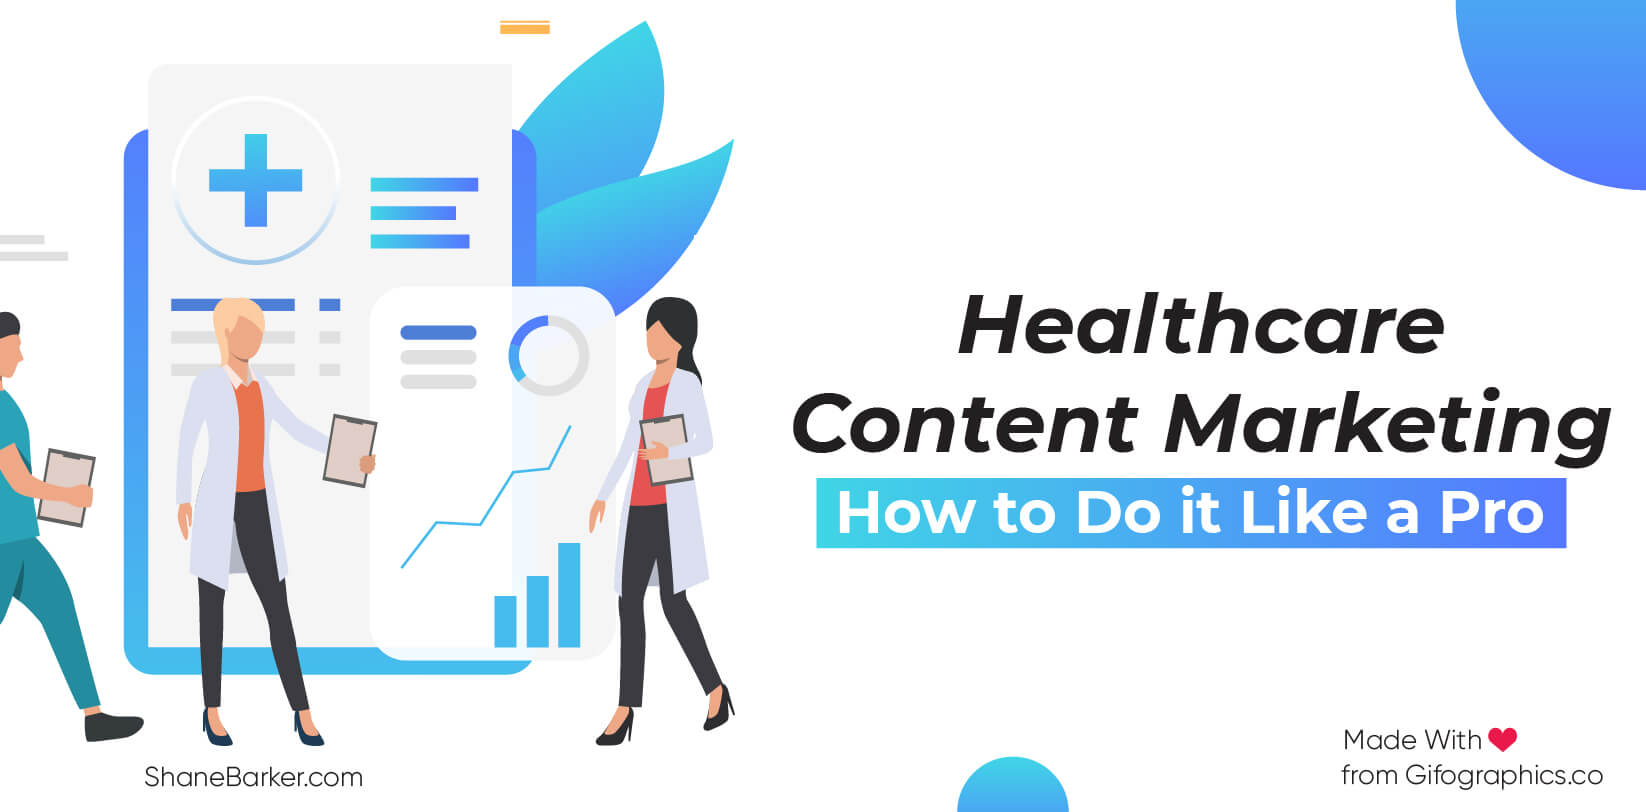 Healthcare Content Marketing How to Do it Like a Pro